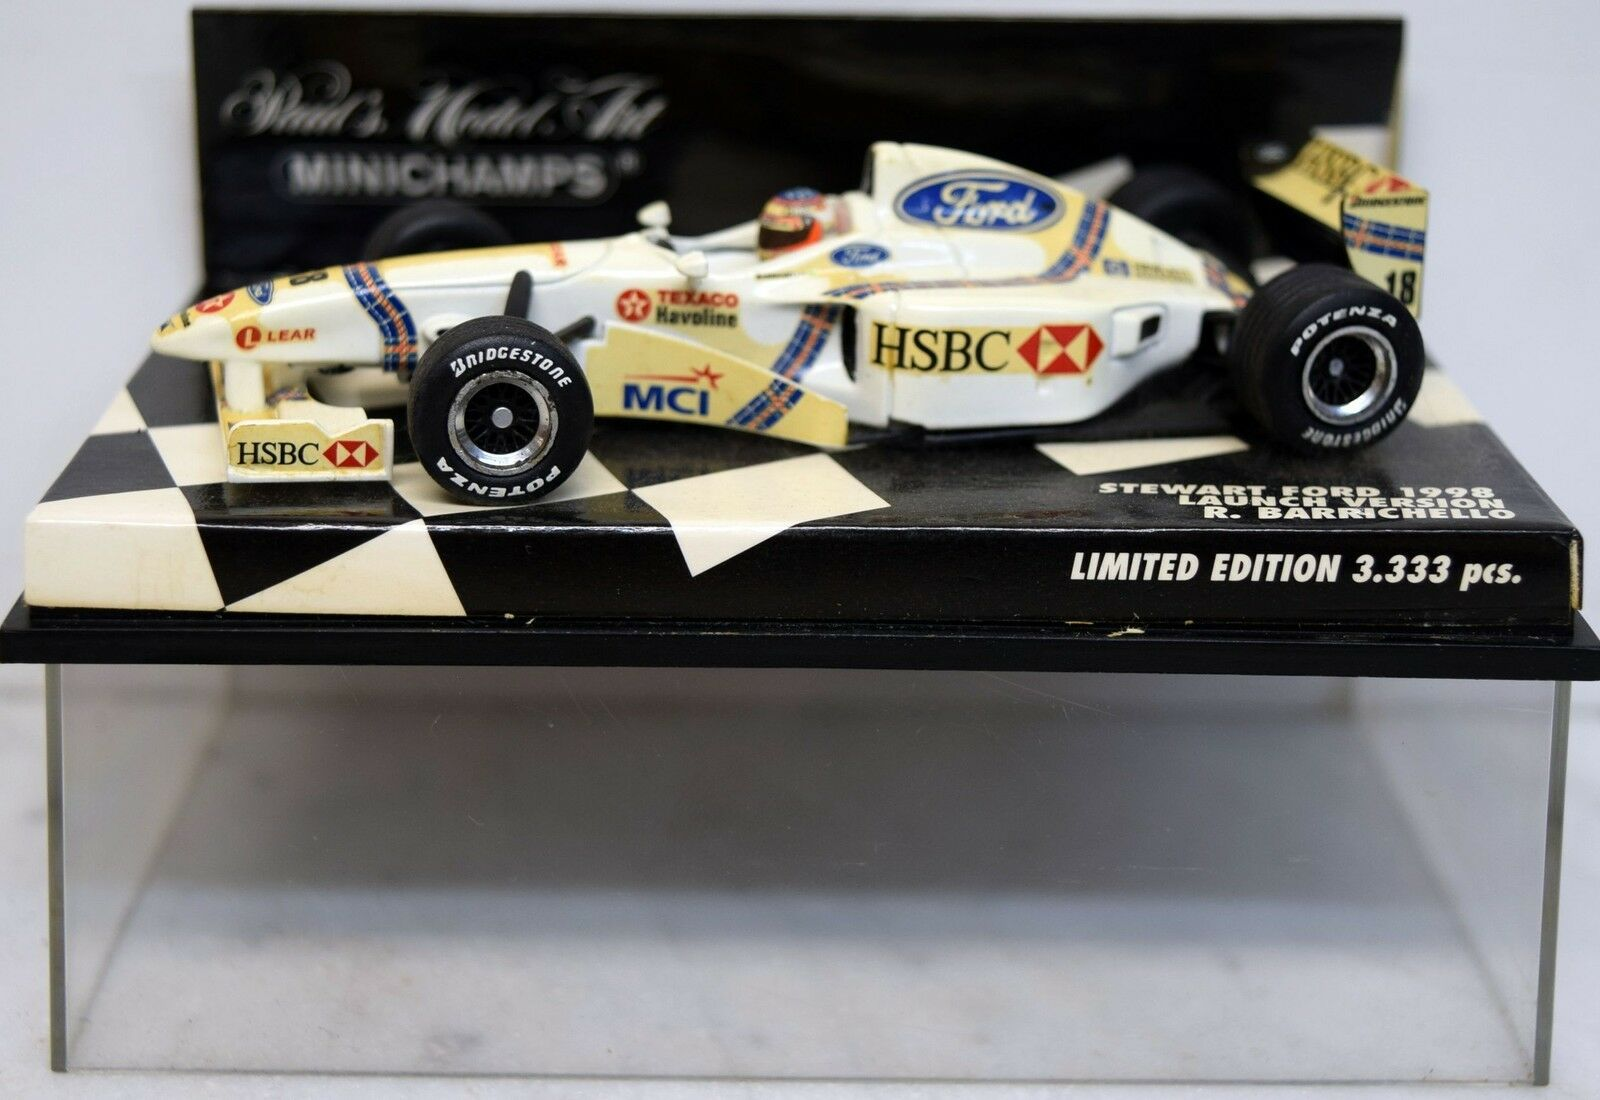 Minichamps 1 43 430970022 stewart ford SF 1, R. barrichello